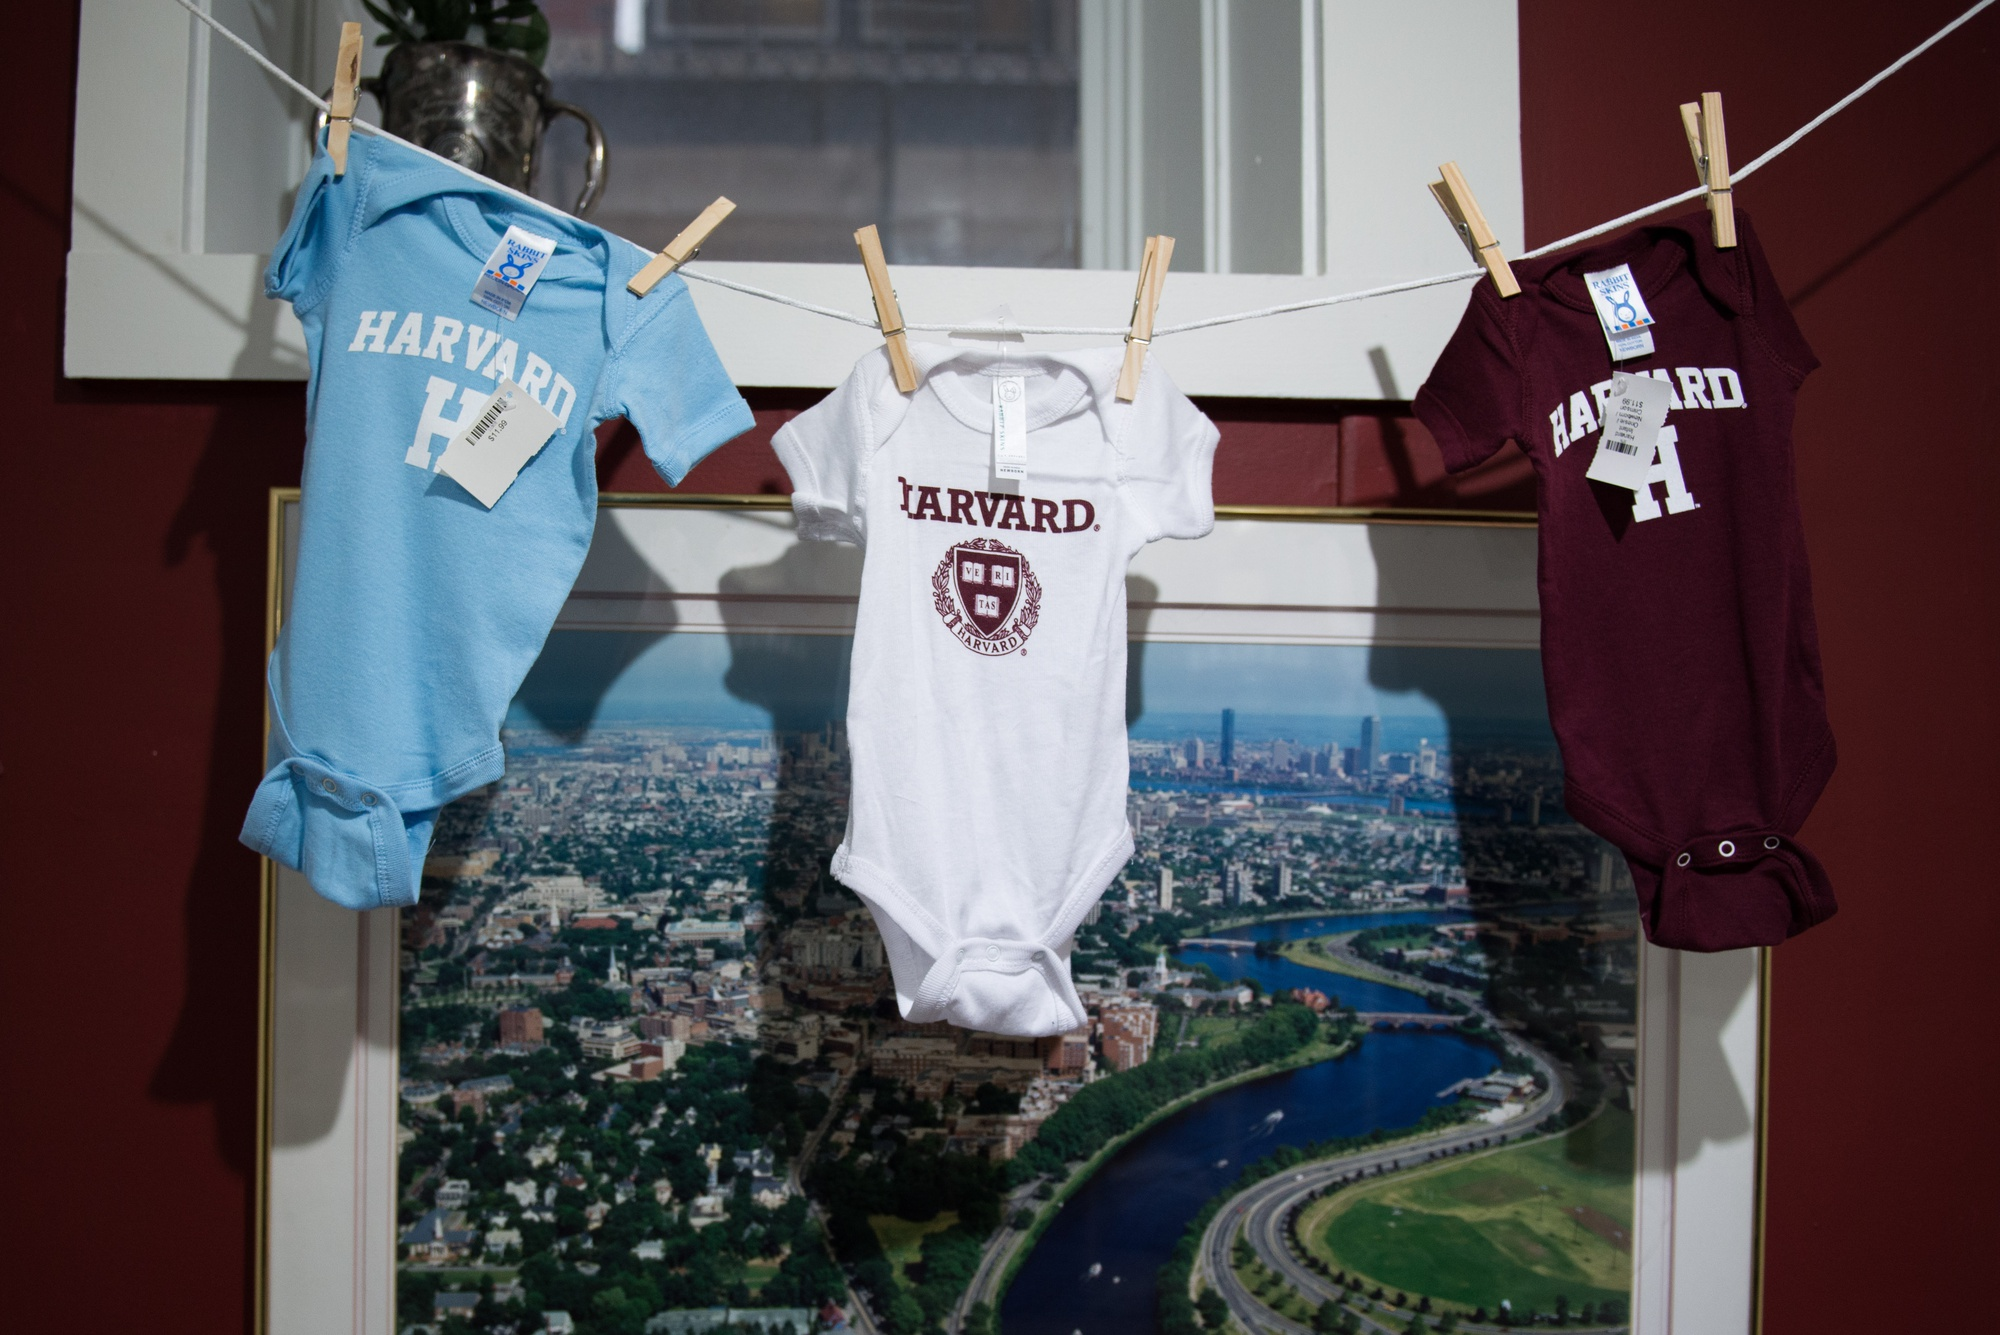 Options for baby onesies hang in front of a photograph of Boston and the Charles River in the Harvard Shop on Mt. Auburn Street.